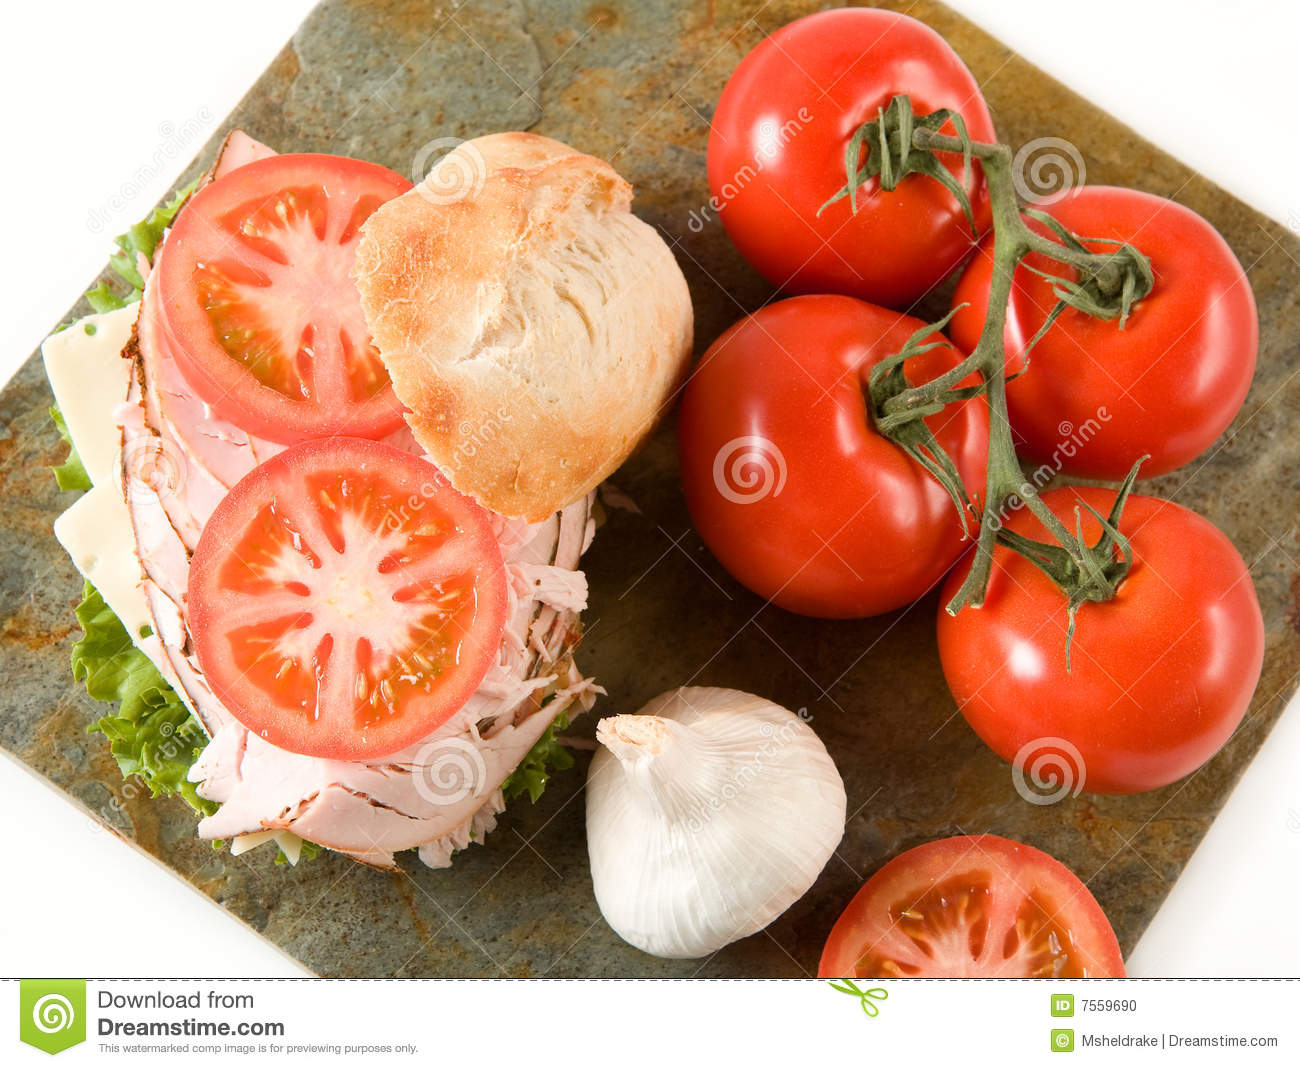 Turkey Sandwich And Vegetables Stock Photo - Image: 7559690